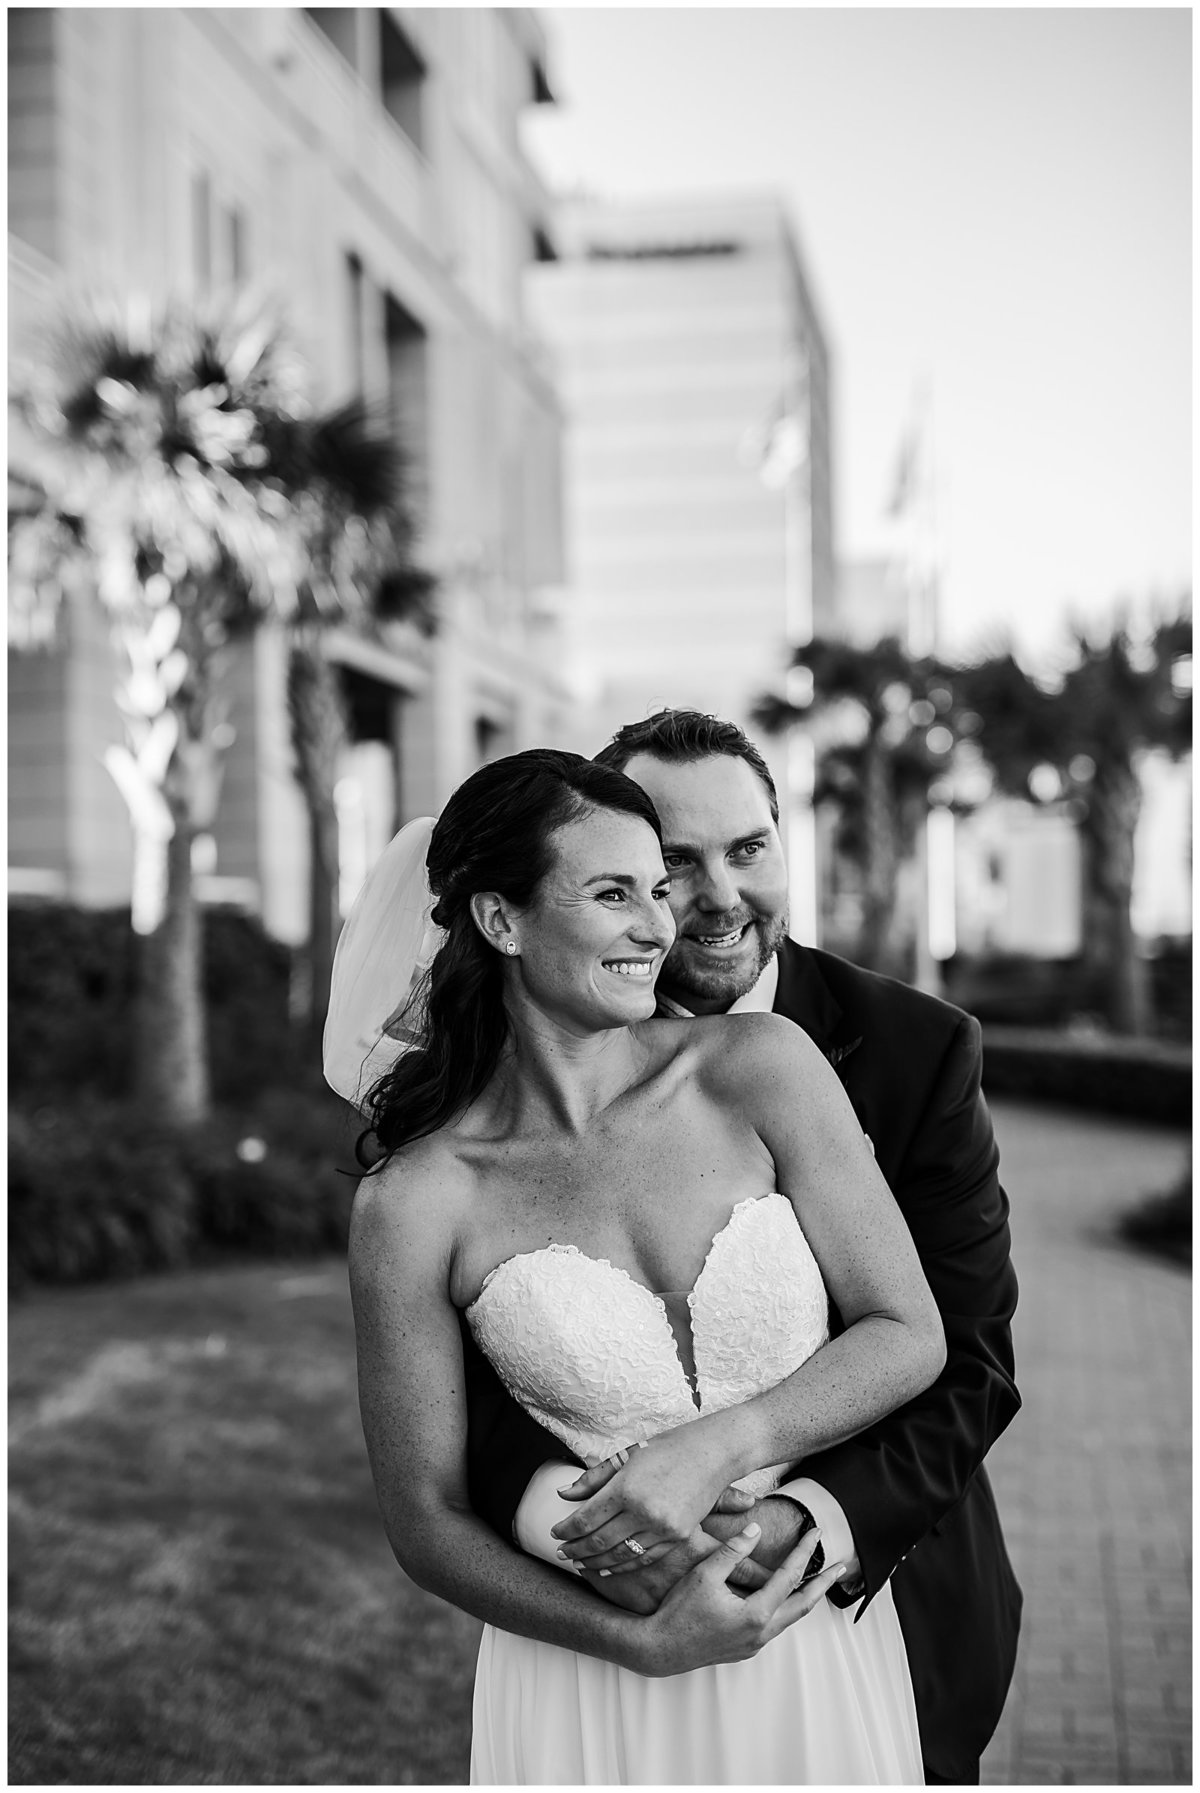 meghan lupyan hampton roads wedding photographer252